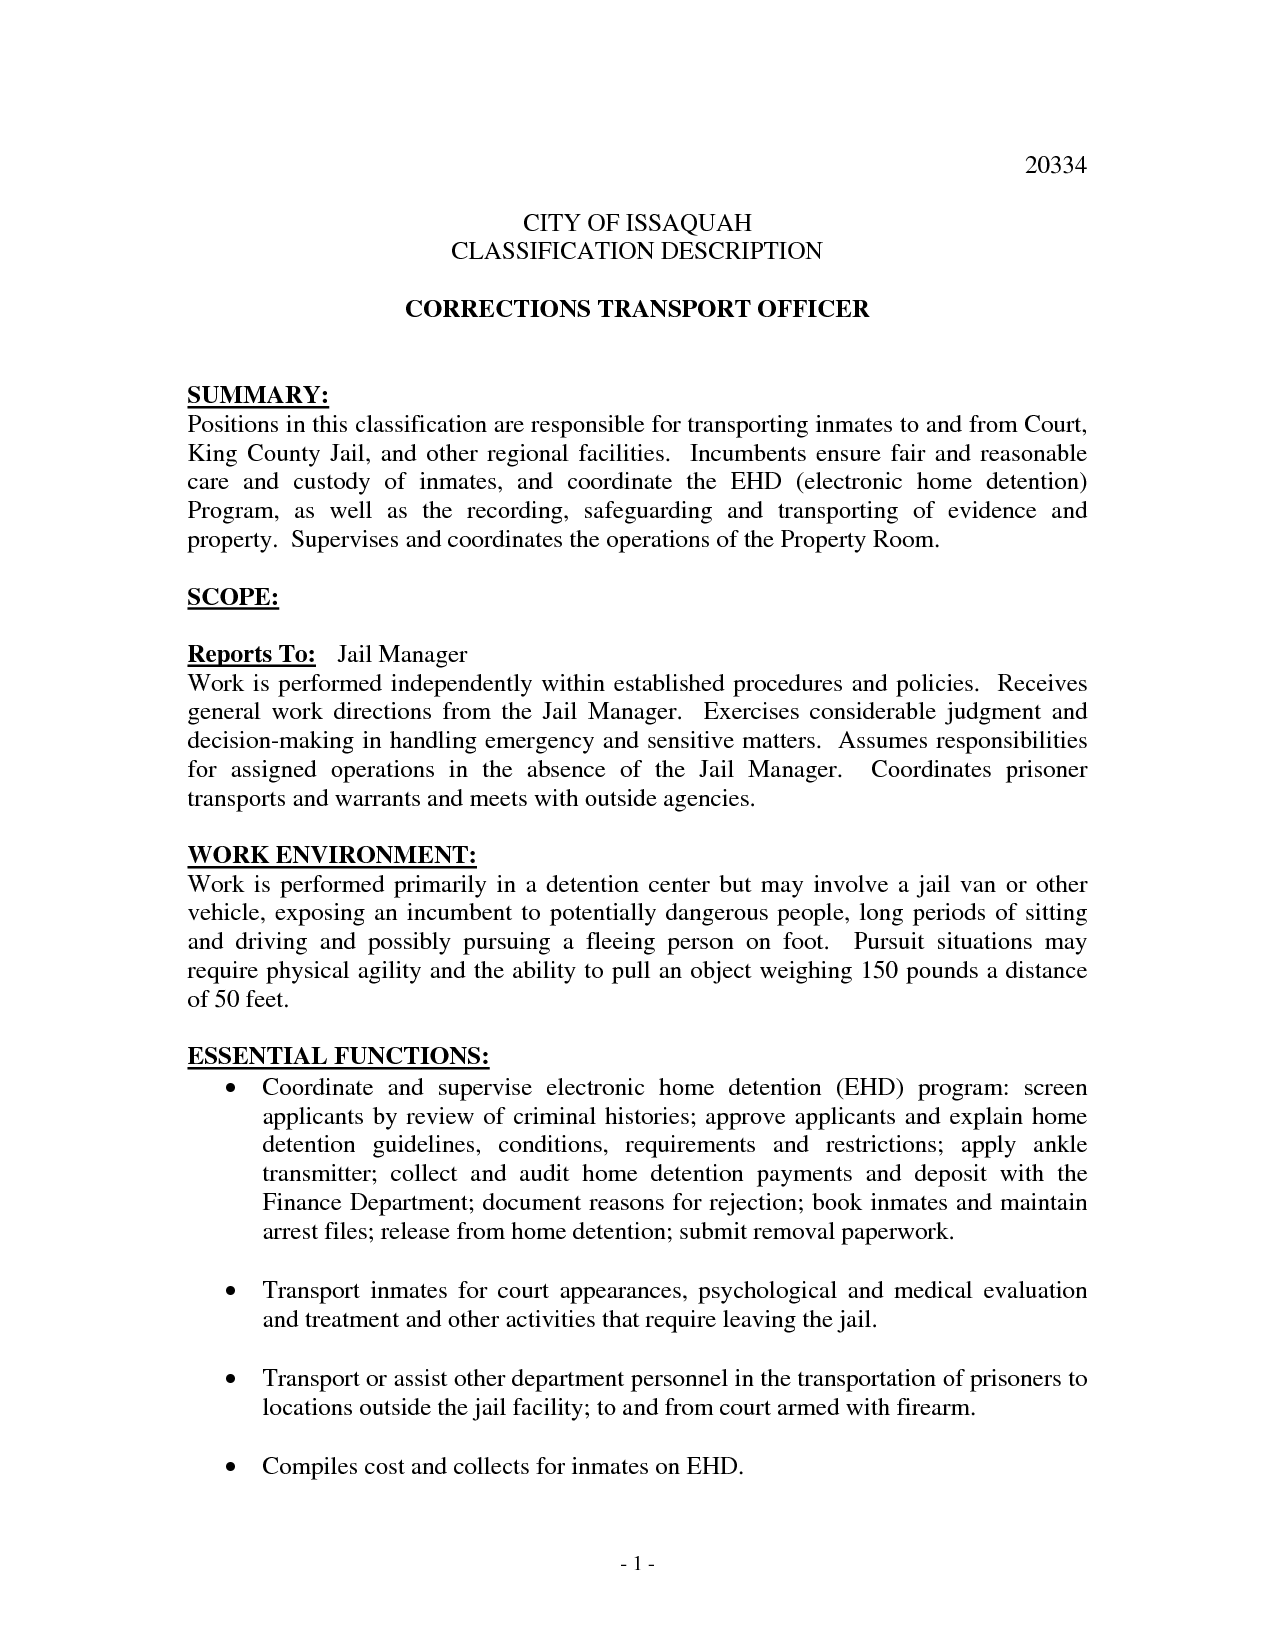 Correctional Officer Resume No Experience   Http://www.jobresume.website/  Resume With No Experience Examples